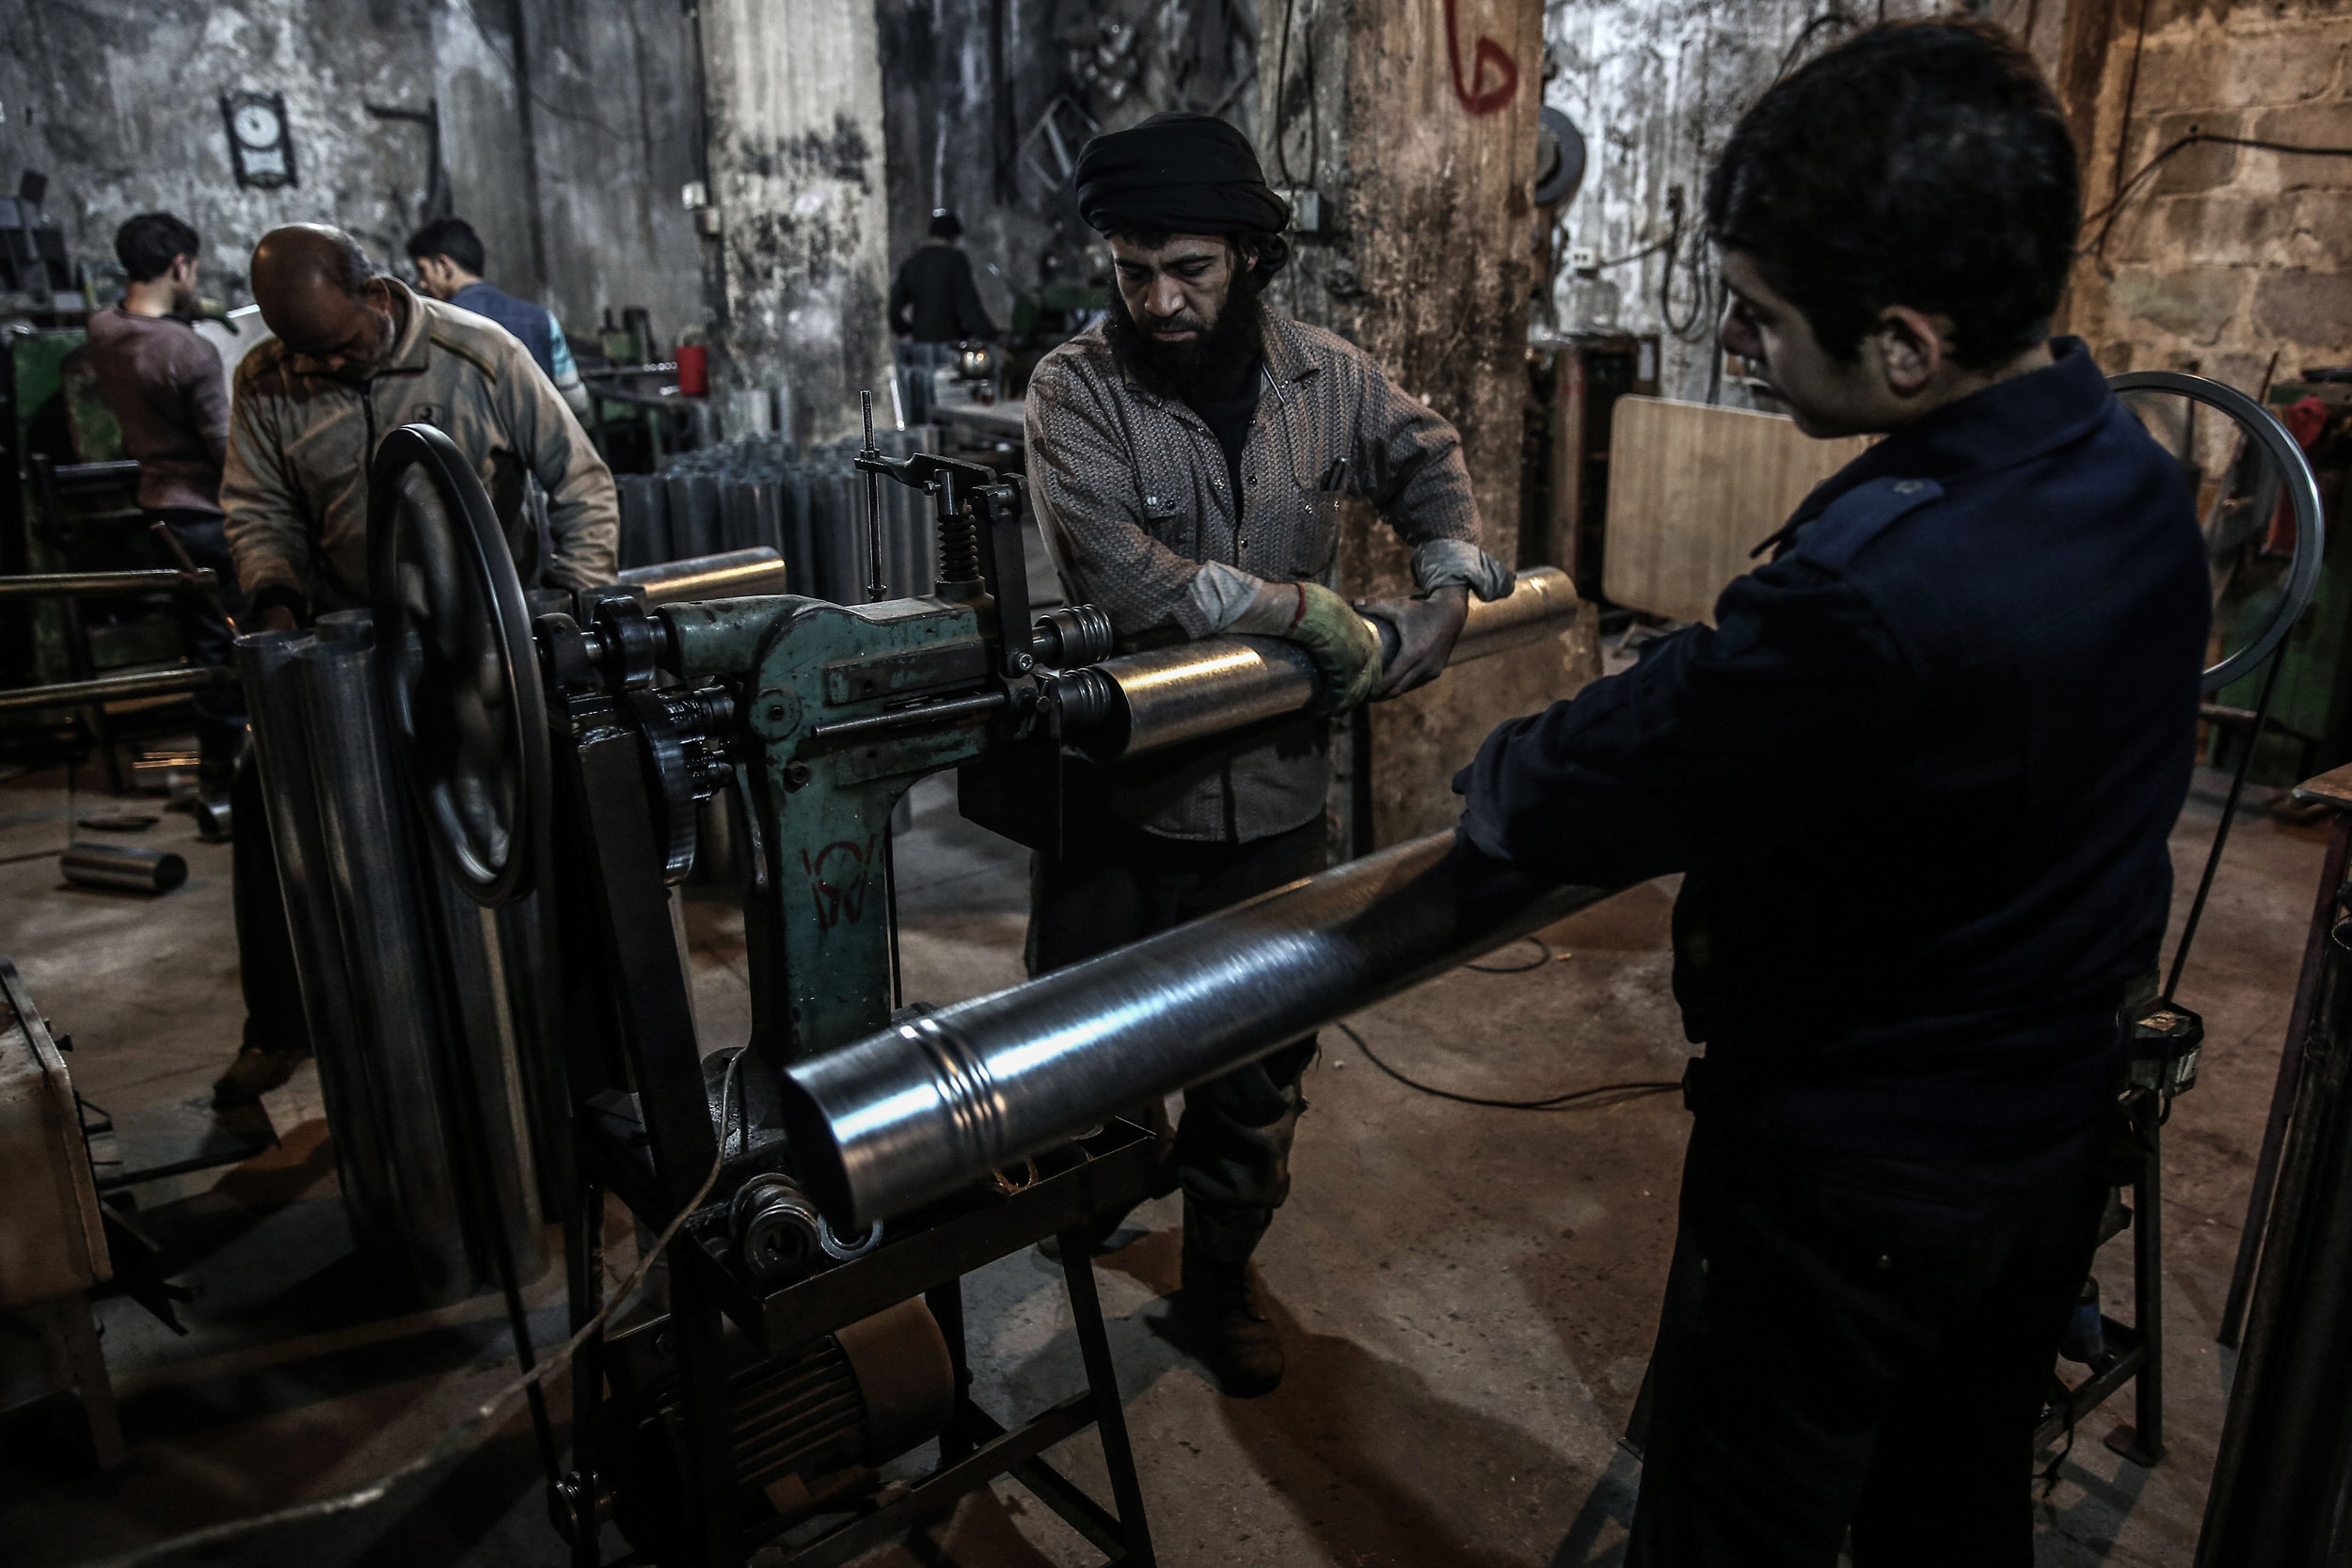 - People work at a factory making wood-burning stoves in the city of Douma.